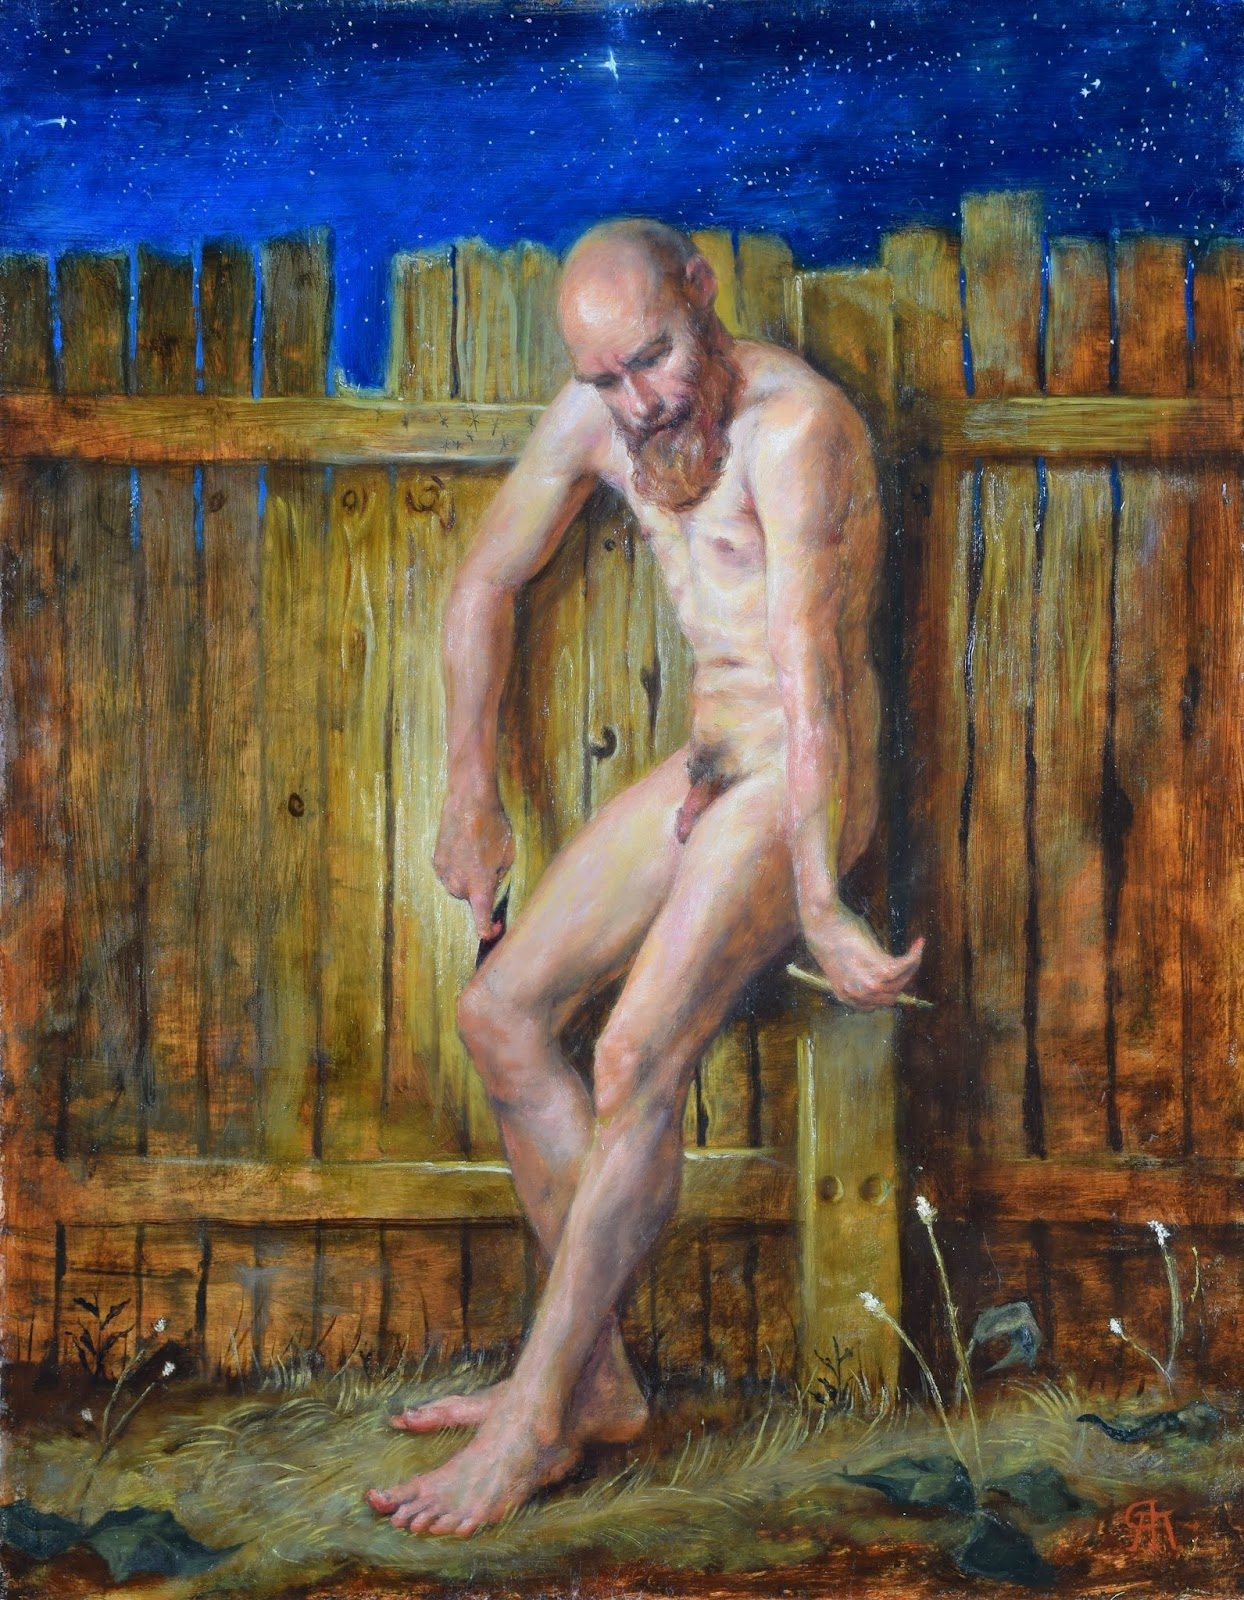 Rory Alan MacLean, Groping, Oil on linen, 24 x 20 inches.jpg